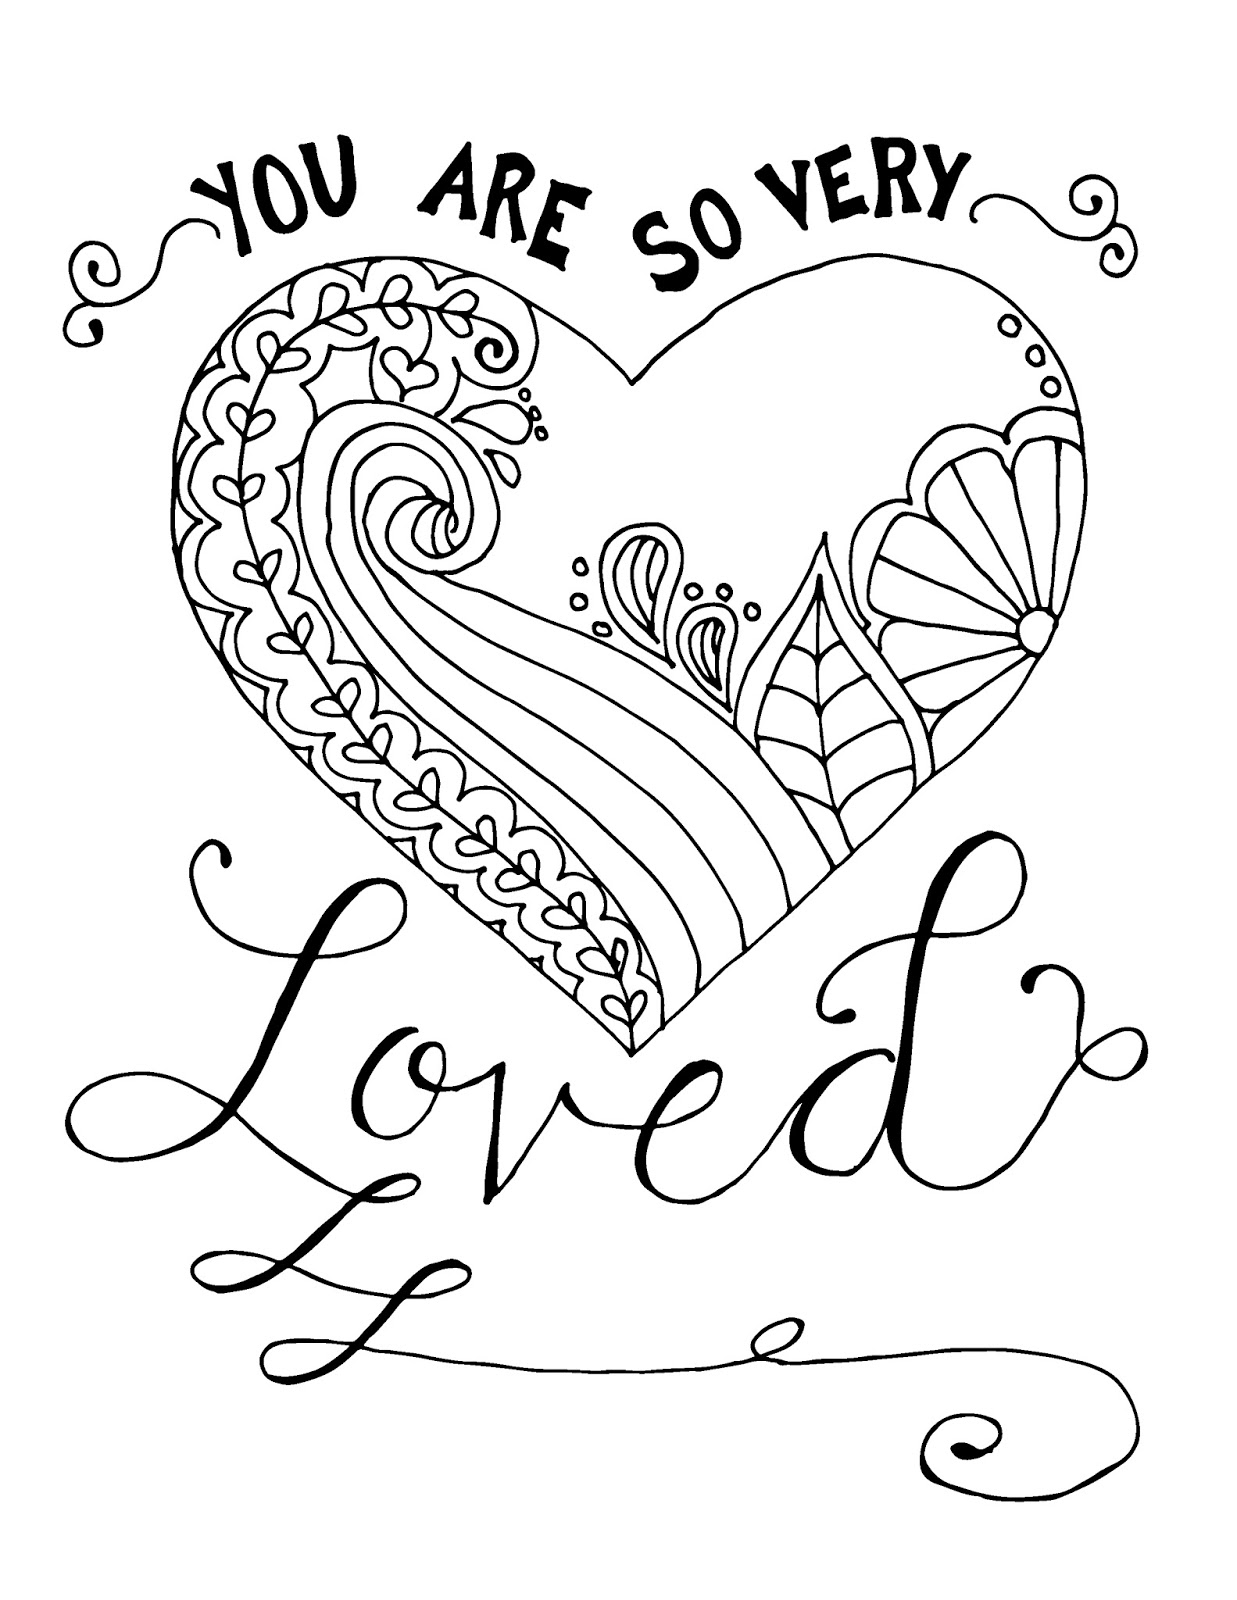 Free coloring pages august - From Http Bydawnnicole Com 2015 05 Mothers Day Free Coloring Page Html